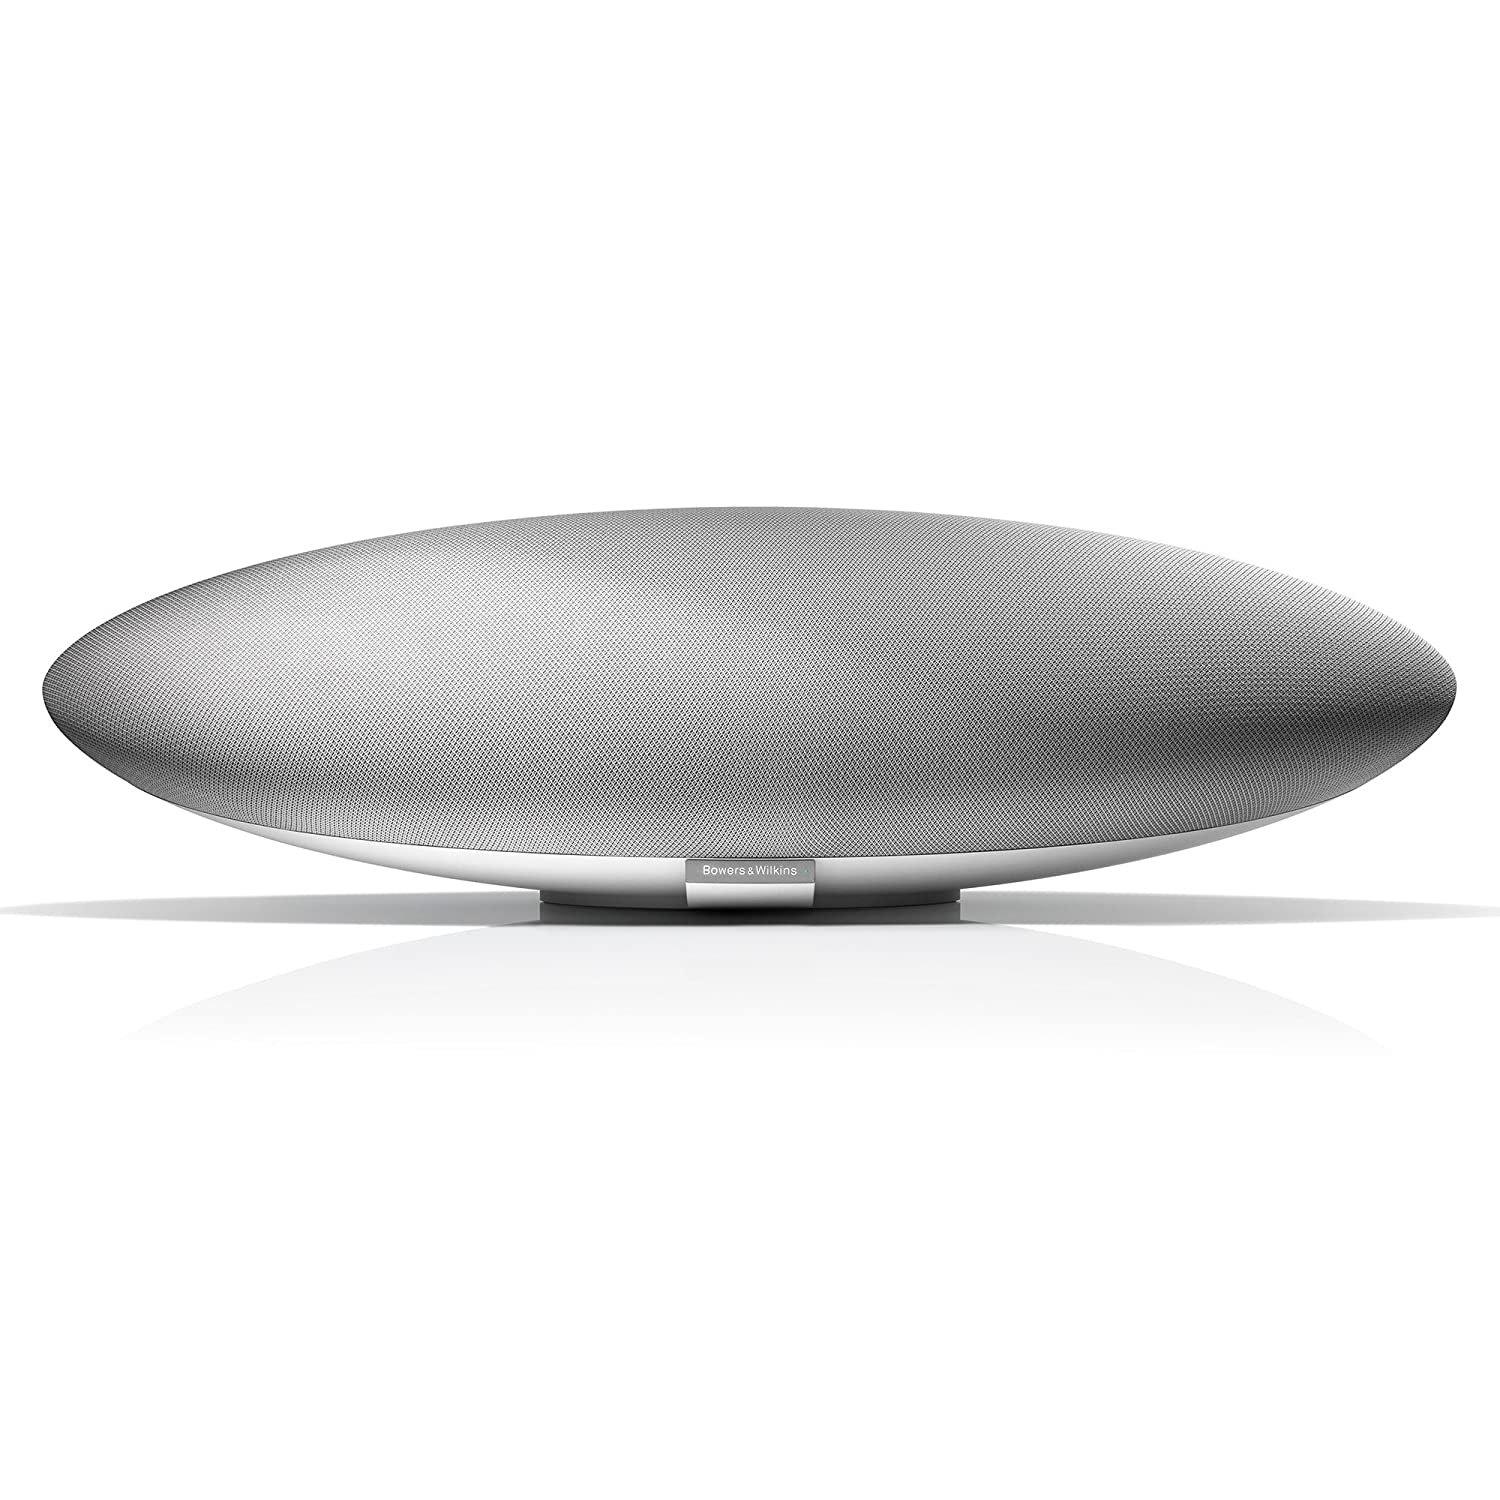 Bowers & Wilkins Zeppelin Wireless White - Sistema de altavoces, color blanco